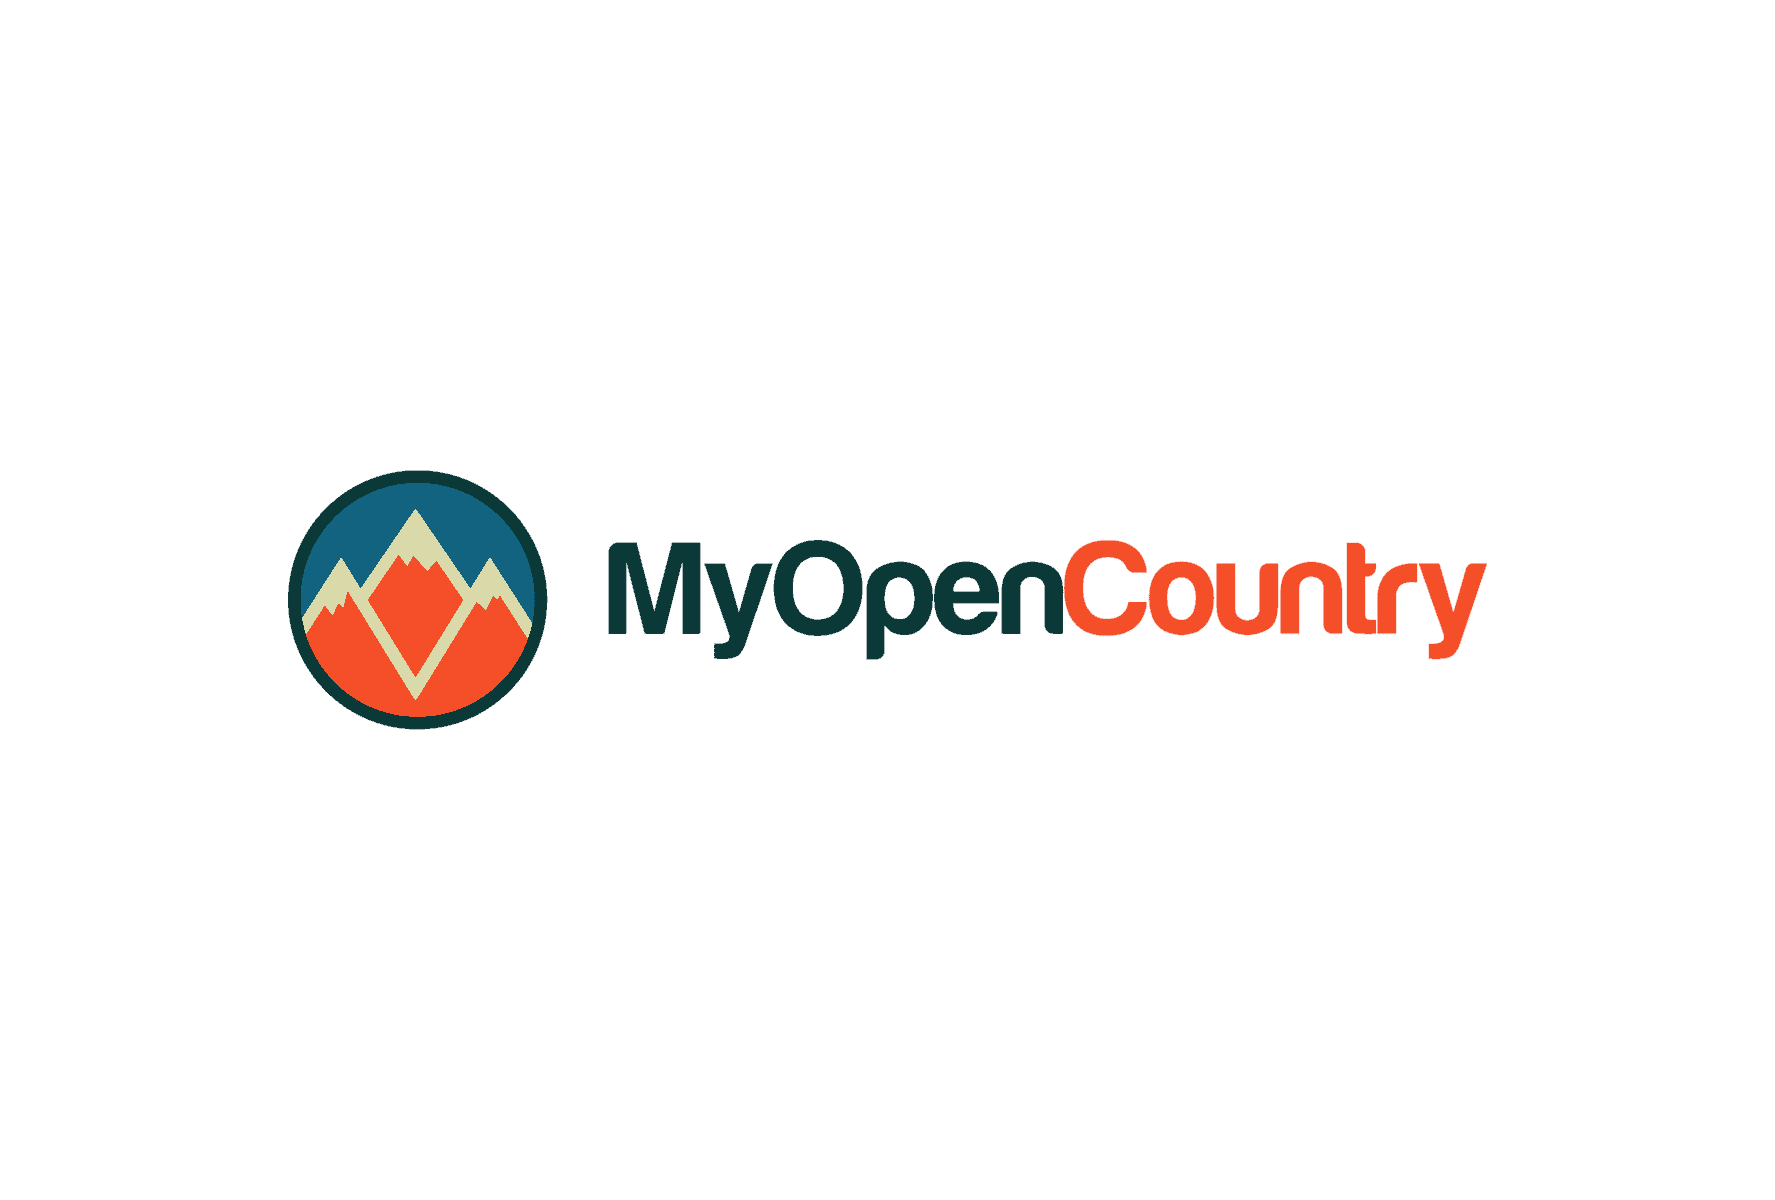 MyOpenCountry Logo - Dark